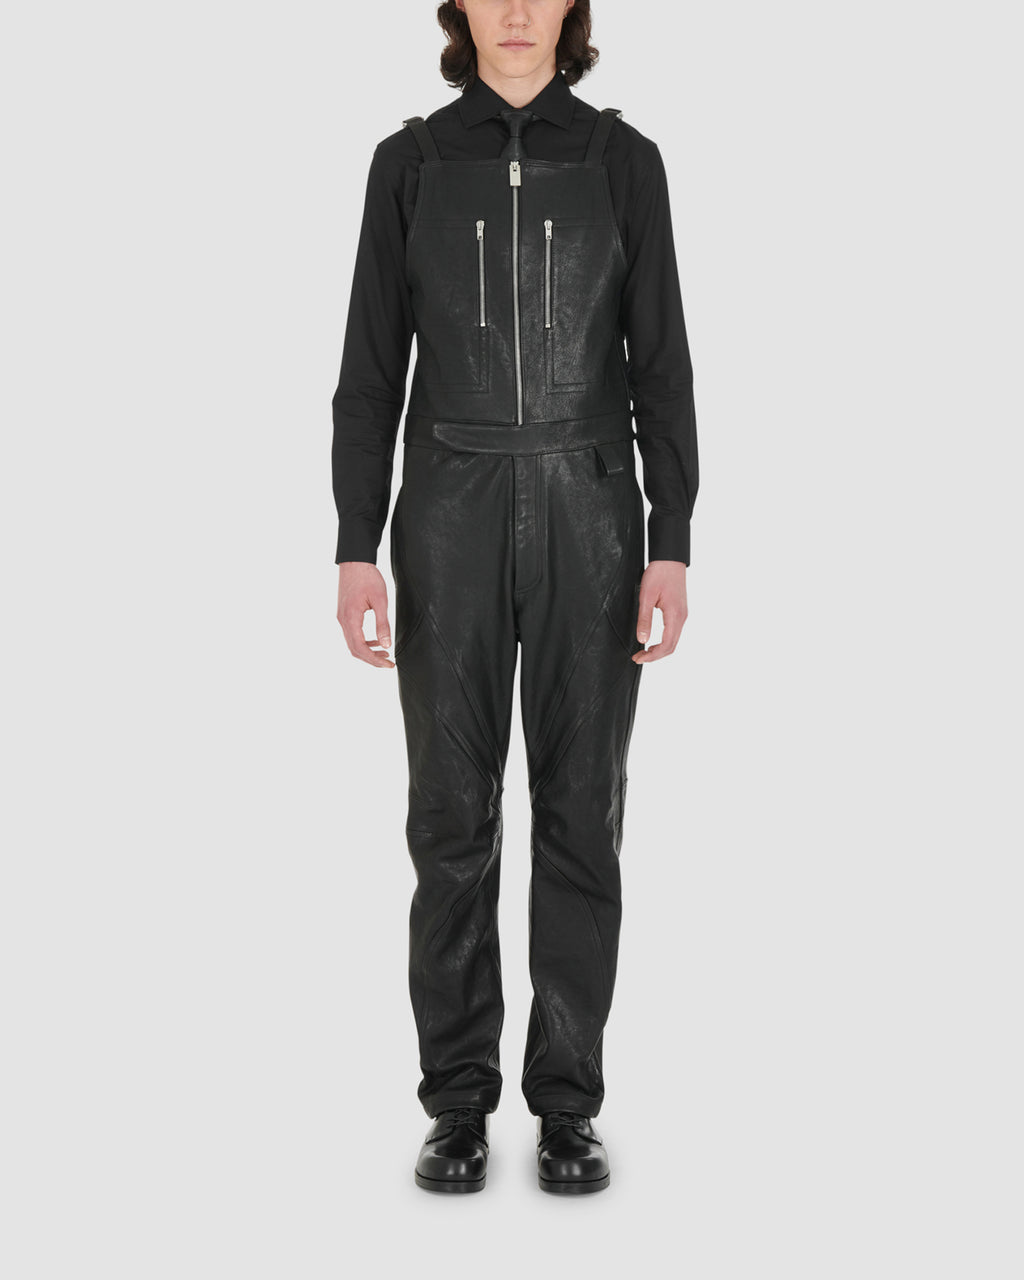 1017 ALYX 9SM | LEATHER FUORIPISTA OVERALL RUNWAY MADE TO ORDER | Pants | F20, FW20 PRE-ORDER, MEN